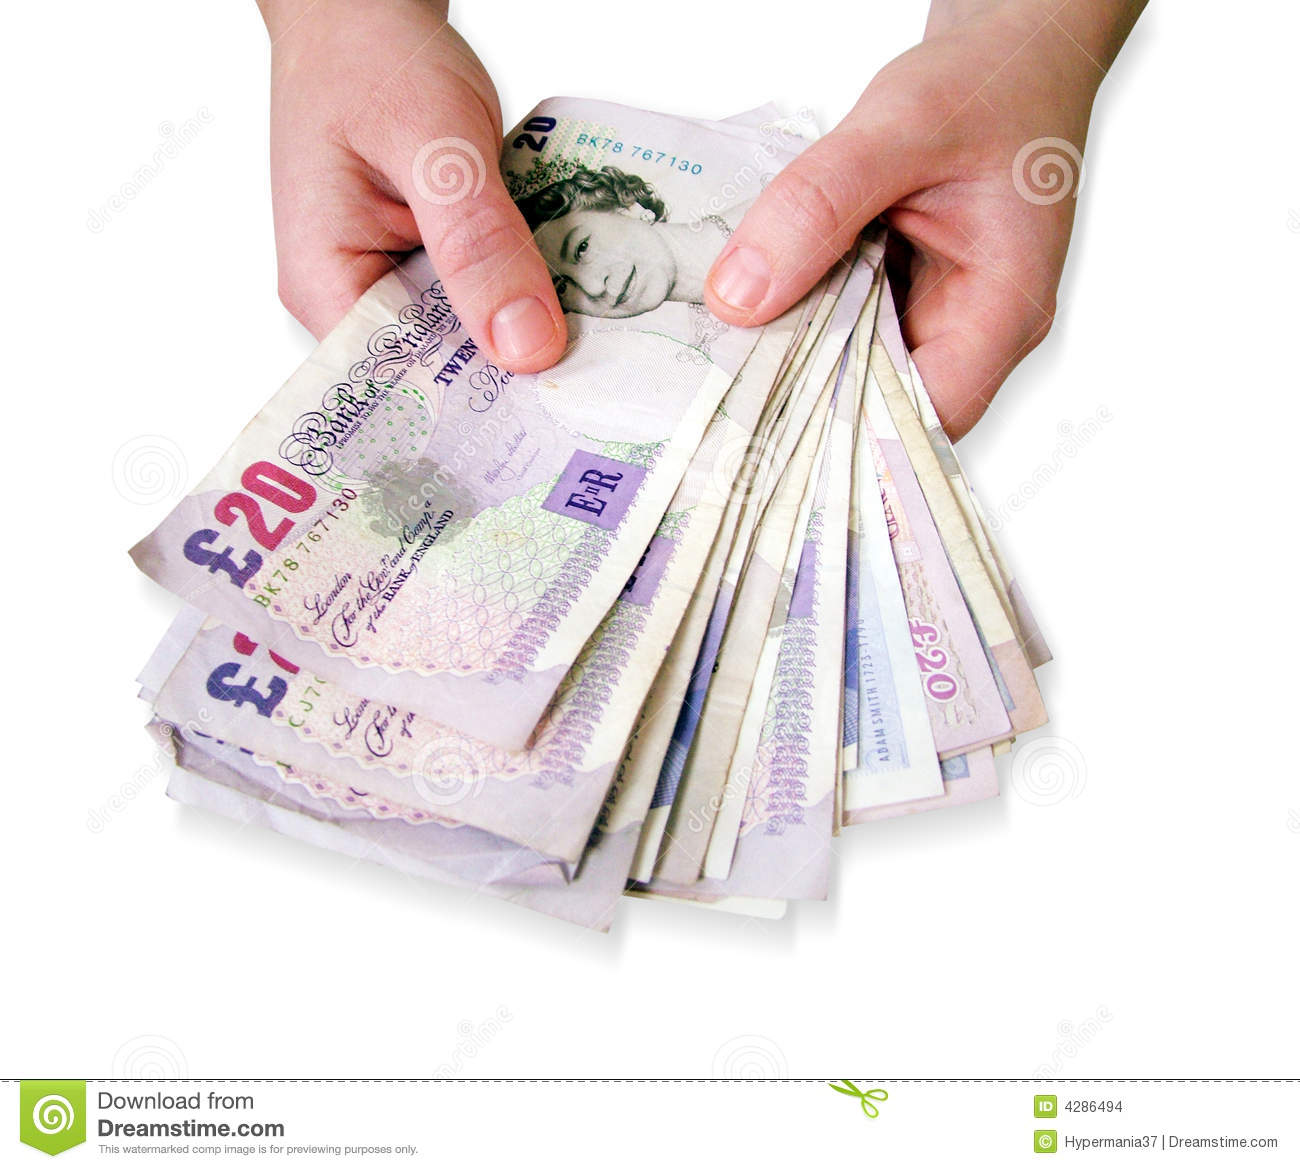 Hands holding money editorial stock image. Image of ...Holding Money In Hand